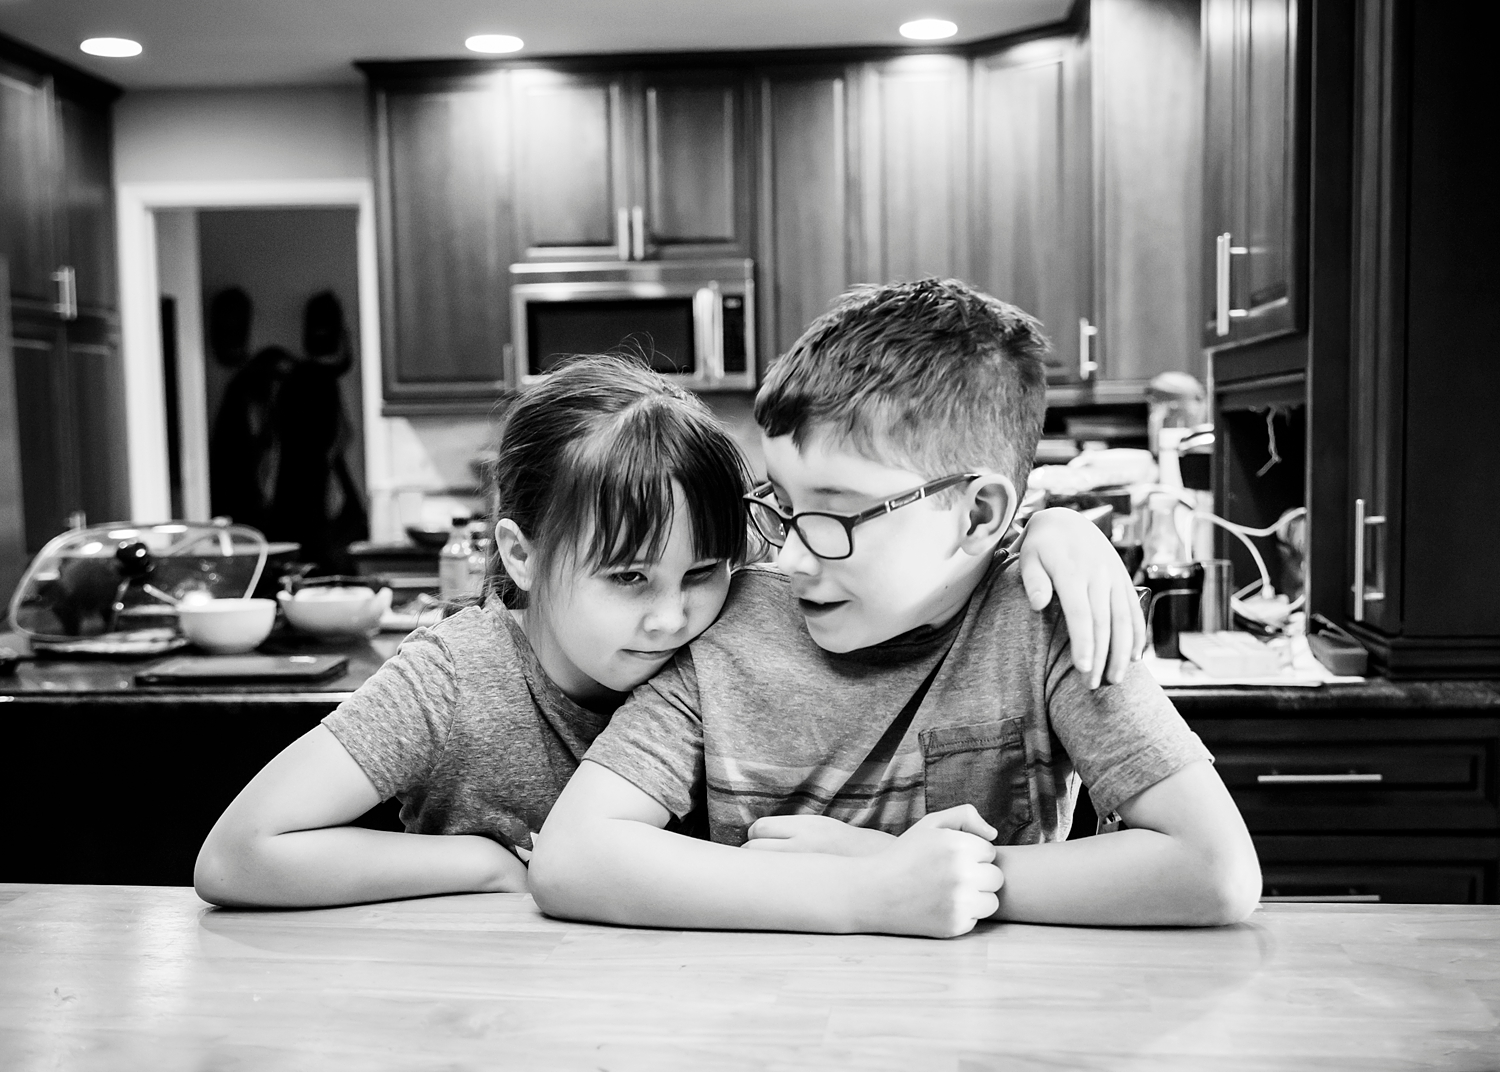 This is how we homeschool. Relationships and happiness are our primary goal in our unschooling journey!